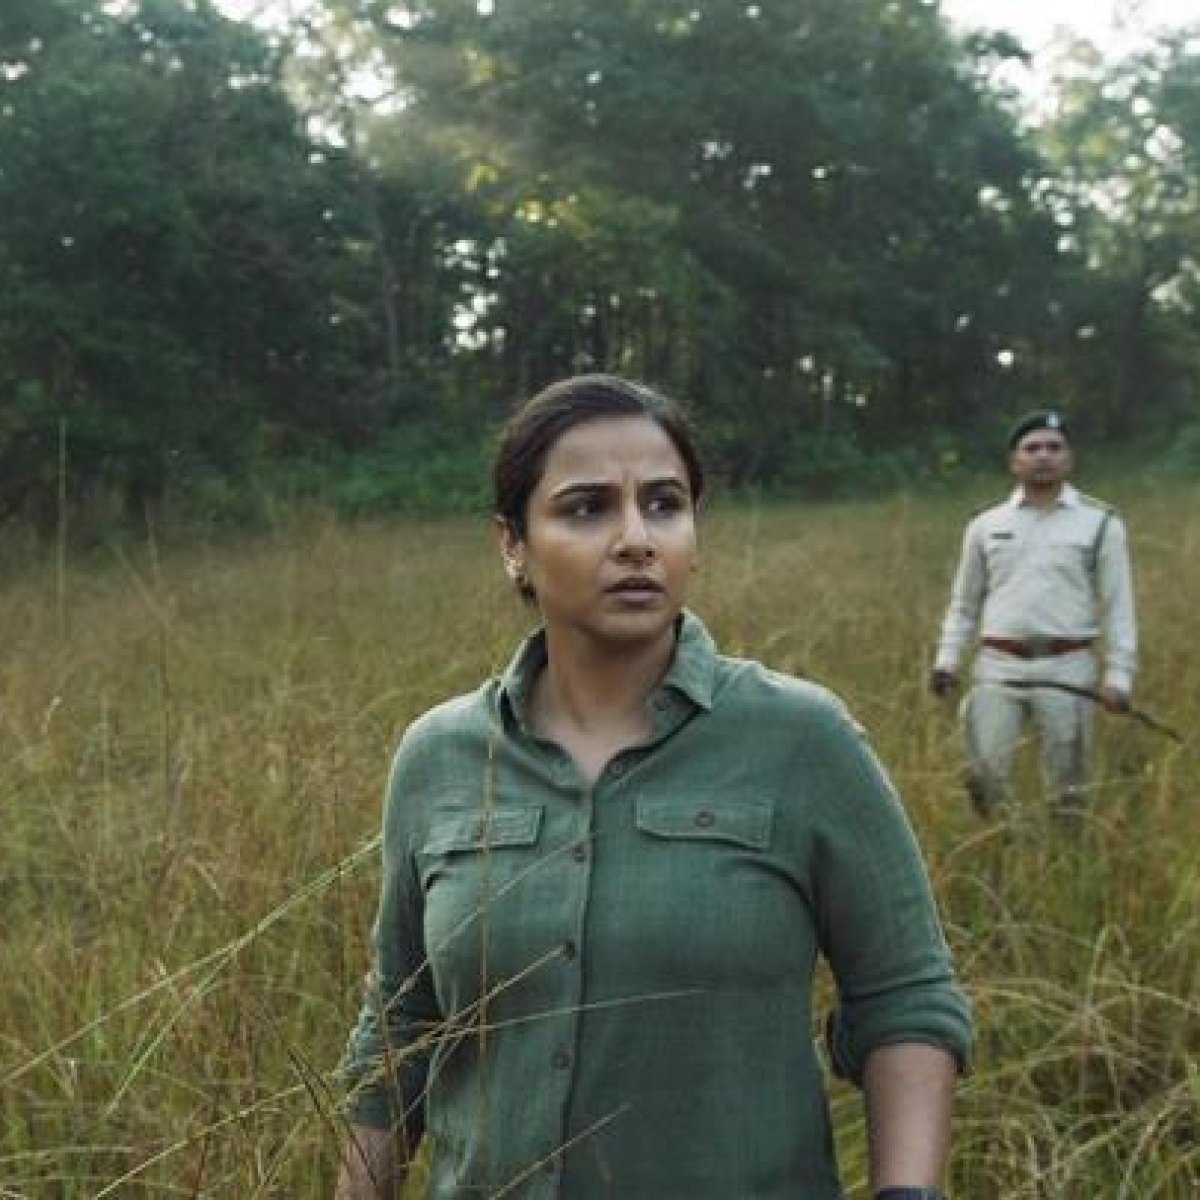 'Met forest officers to understand what exactly the job entails': Vidya Balan on her prep for 'Sherni'